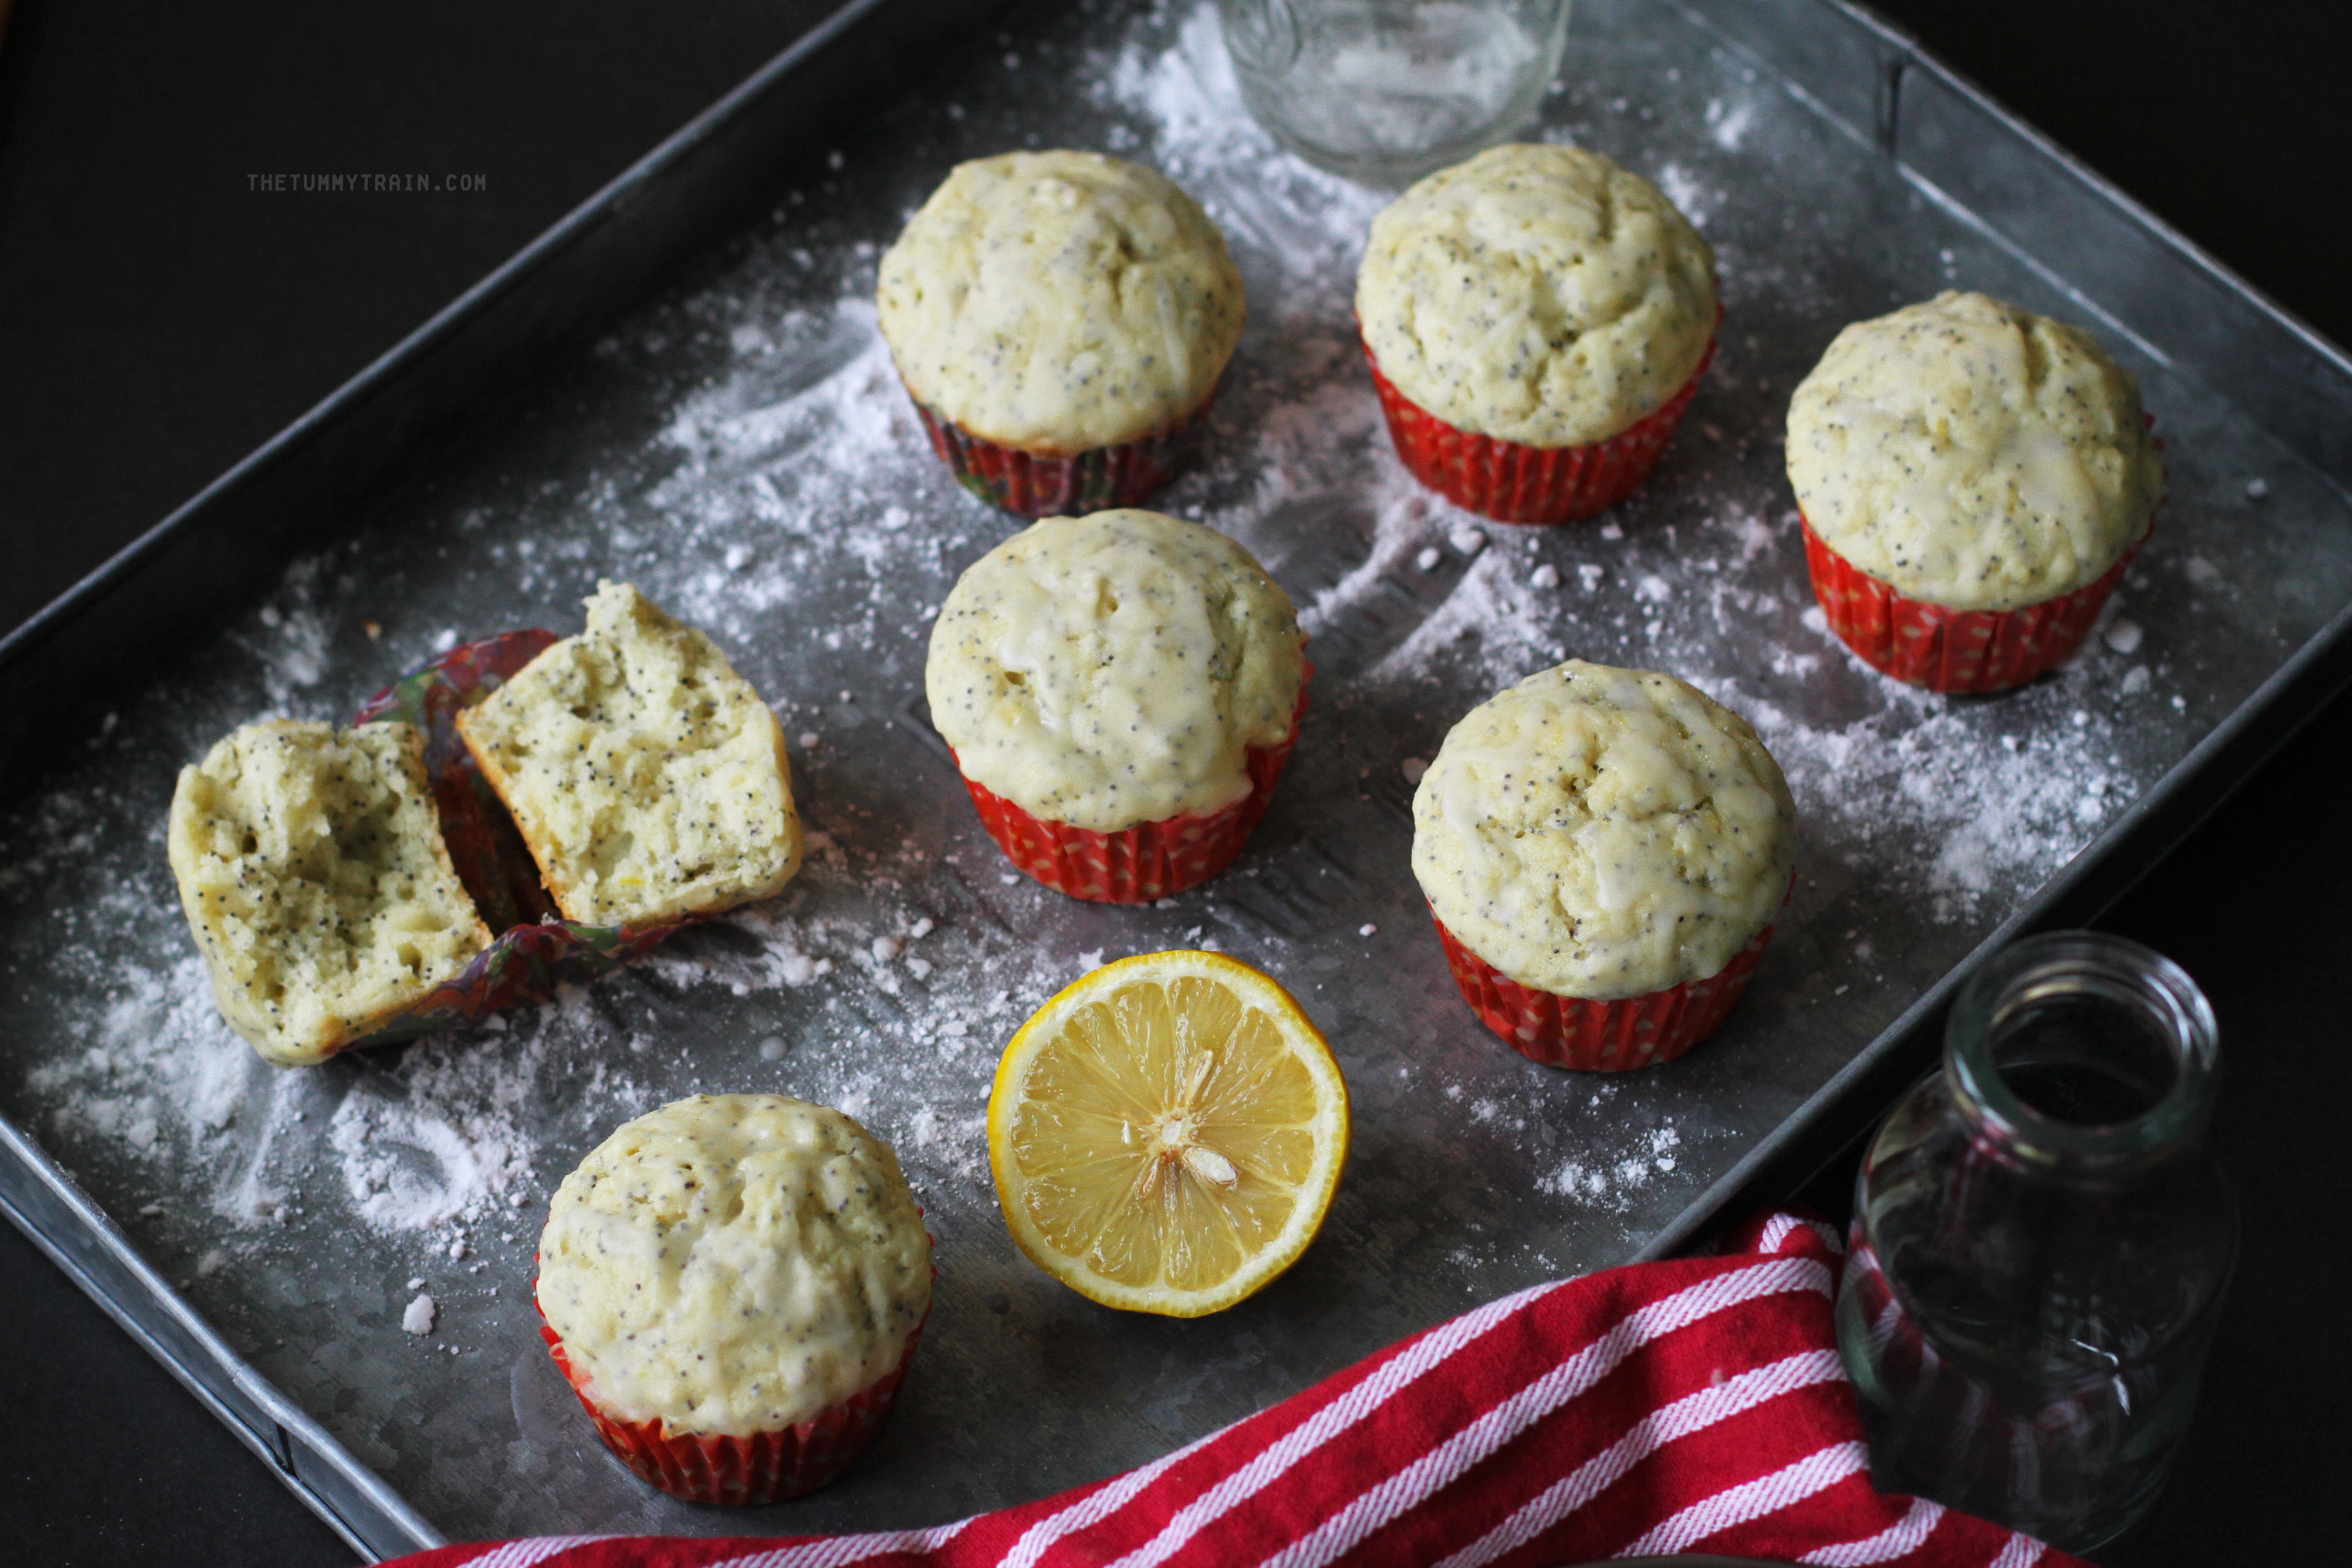 Lemon Poppyseed Muffins 3 - Getting personal with these Lemon Poppyseed Muffins